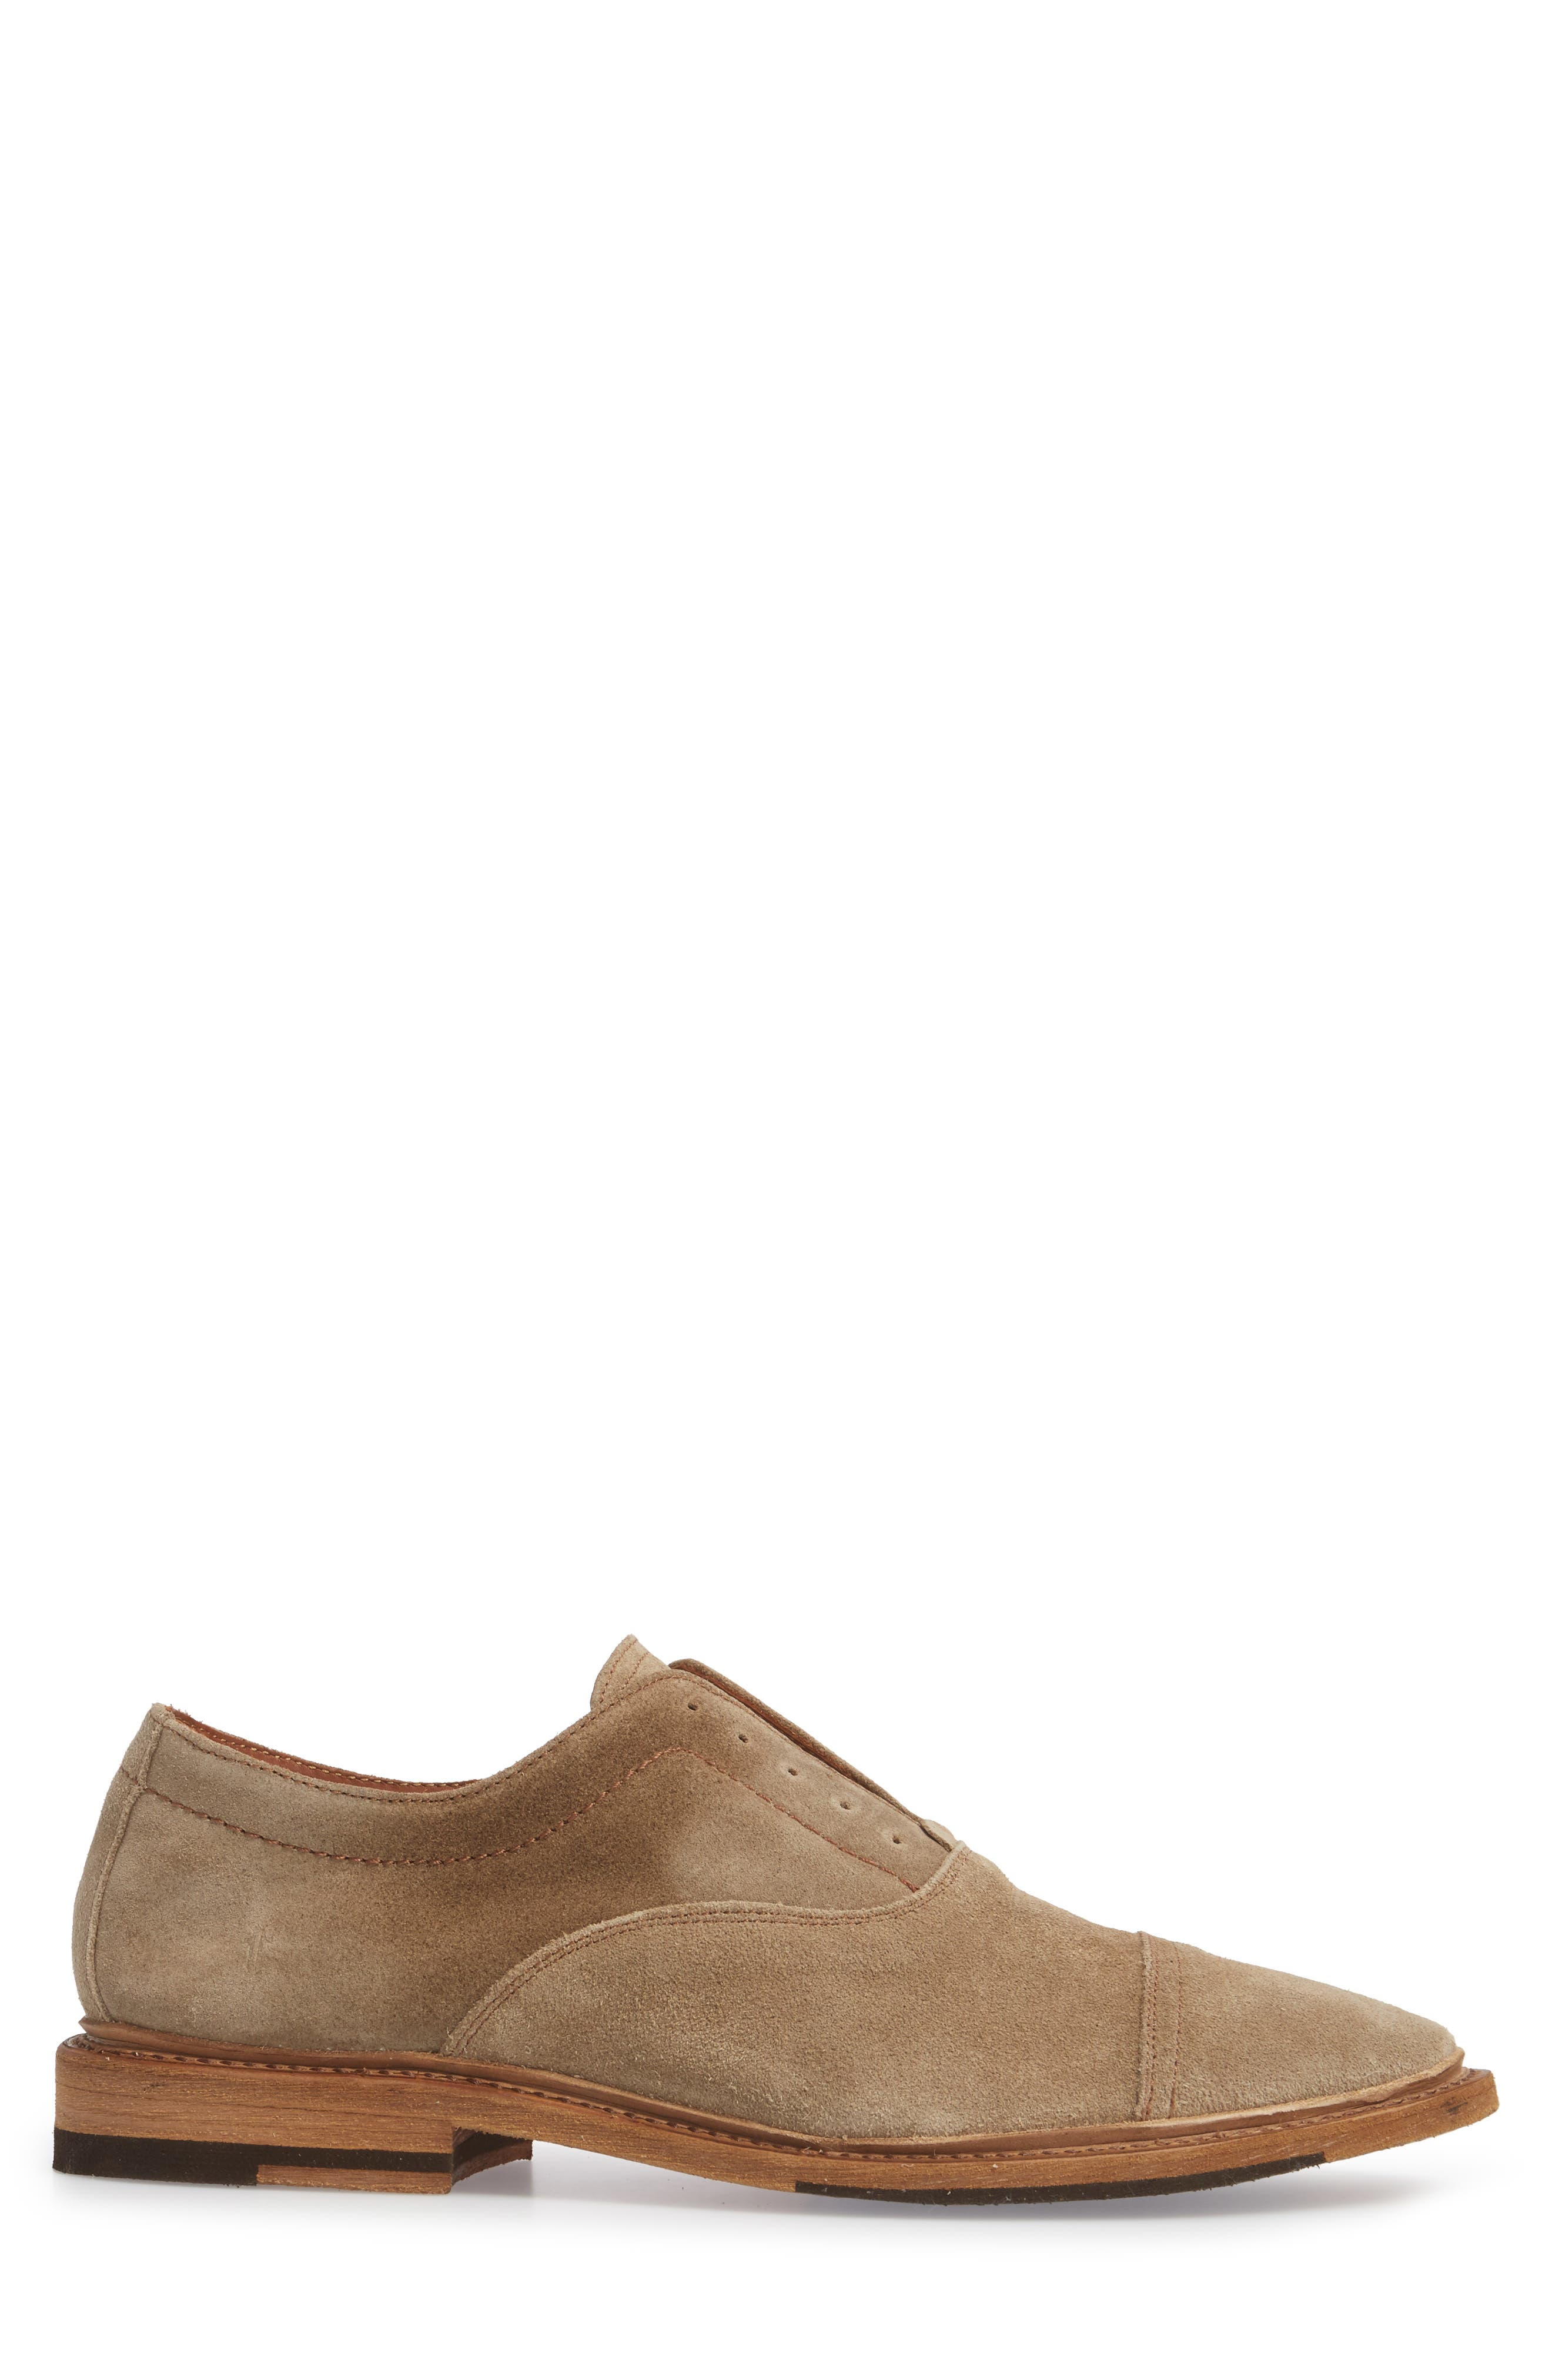 Paul Bal Cap Toe Oxford,                             Alternate thumbnail 8, color,